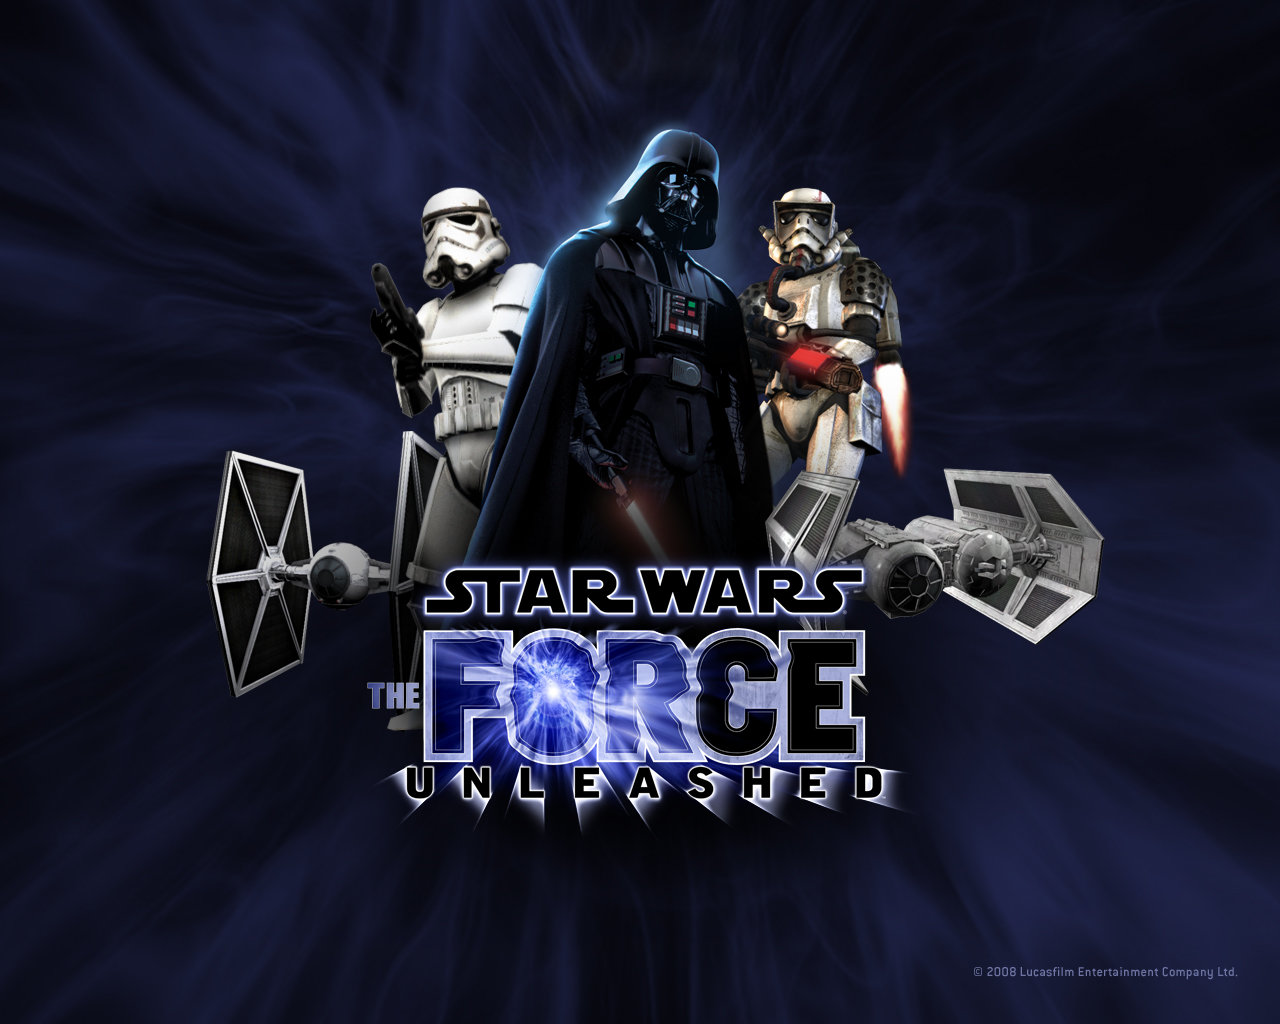 star wars the force unleashed wallpaper hd 1280x1024 259741